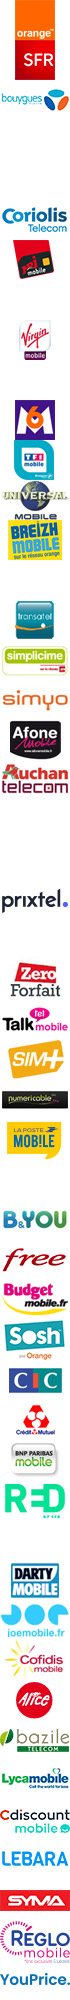 forfait NRJ Mobile Ultimate Speed 24/7 illimit� 12 mois